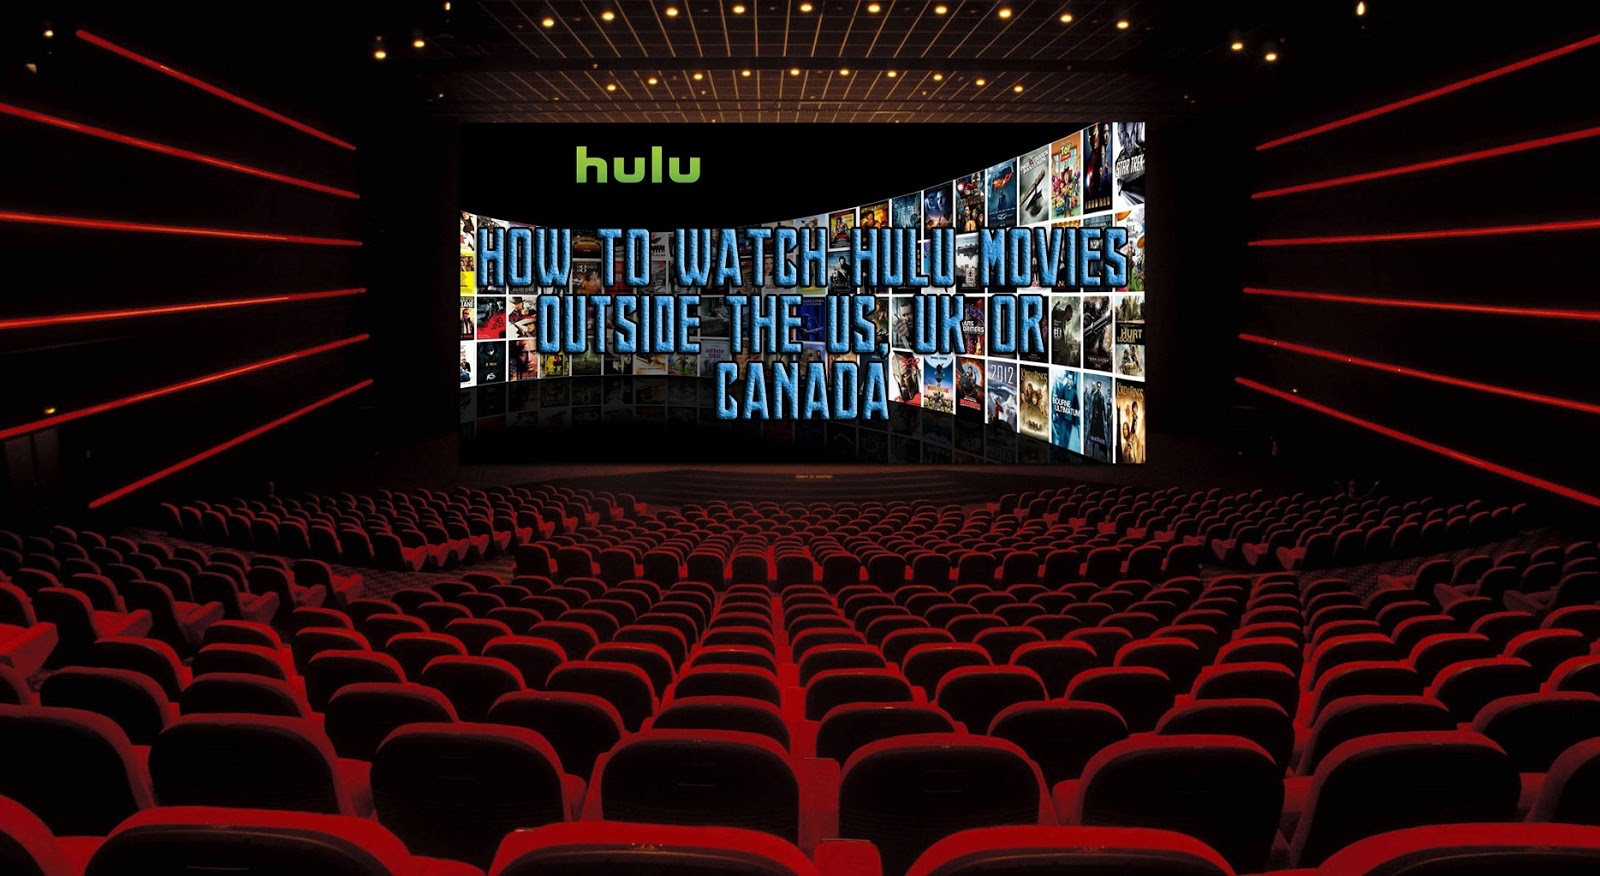 Watch Hulu Movies Outside US UK Canada Free